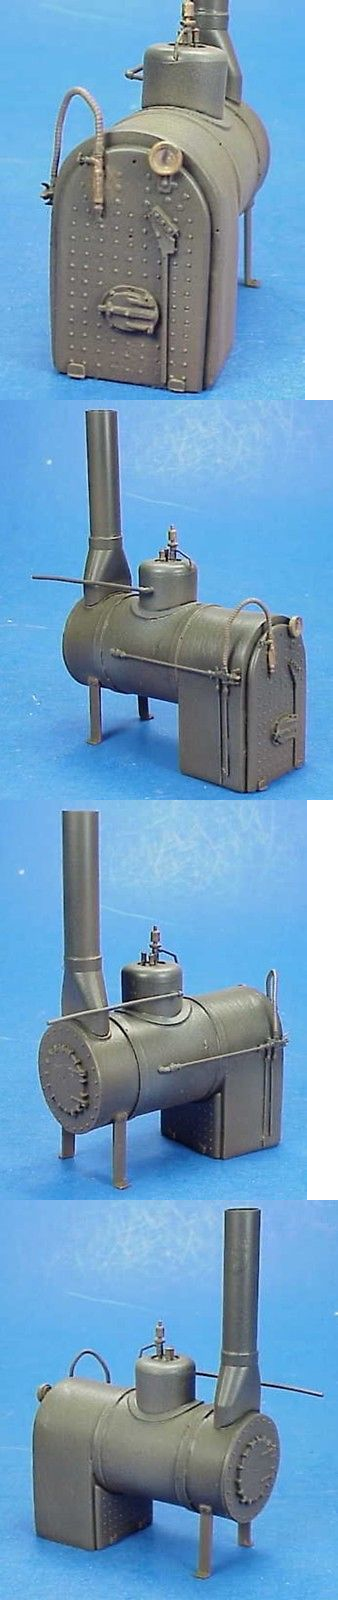 Other Narrow Gauge 9037: O On3 On30 1 48 Wiseman Model Services Stationary Horizontal Boiler Kit -> BUY IT NOW ONLY: $39.95 on eBay!